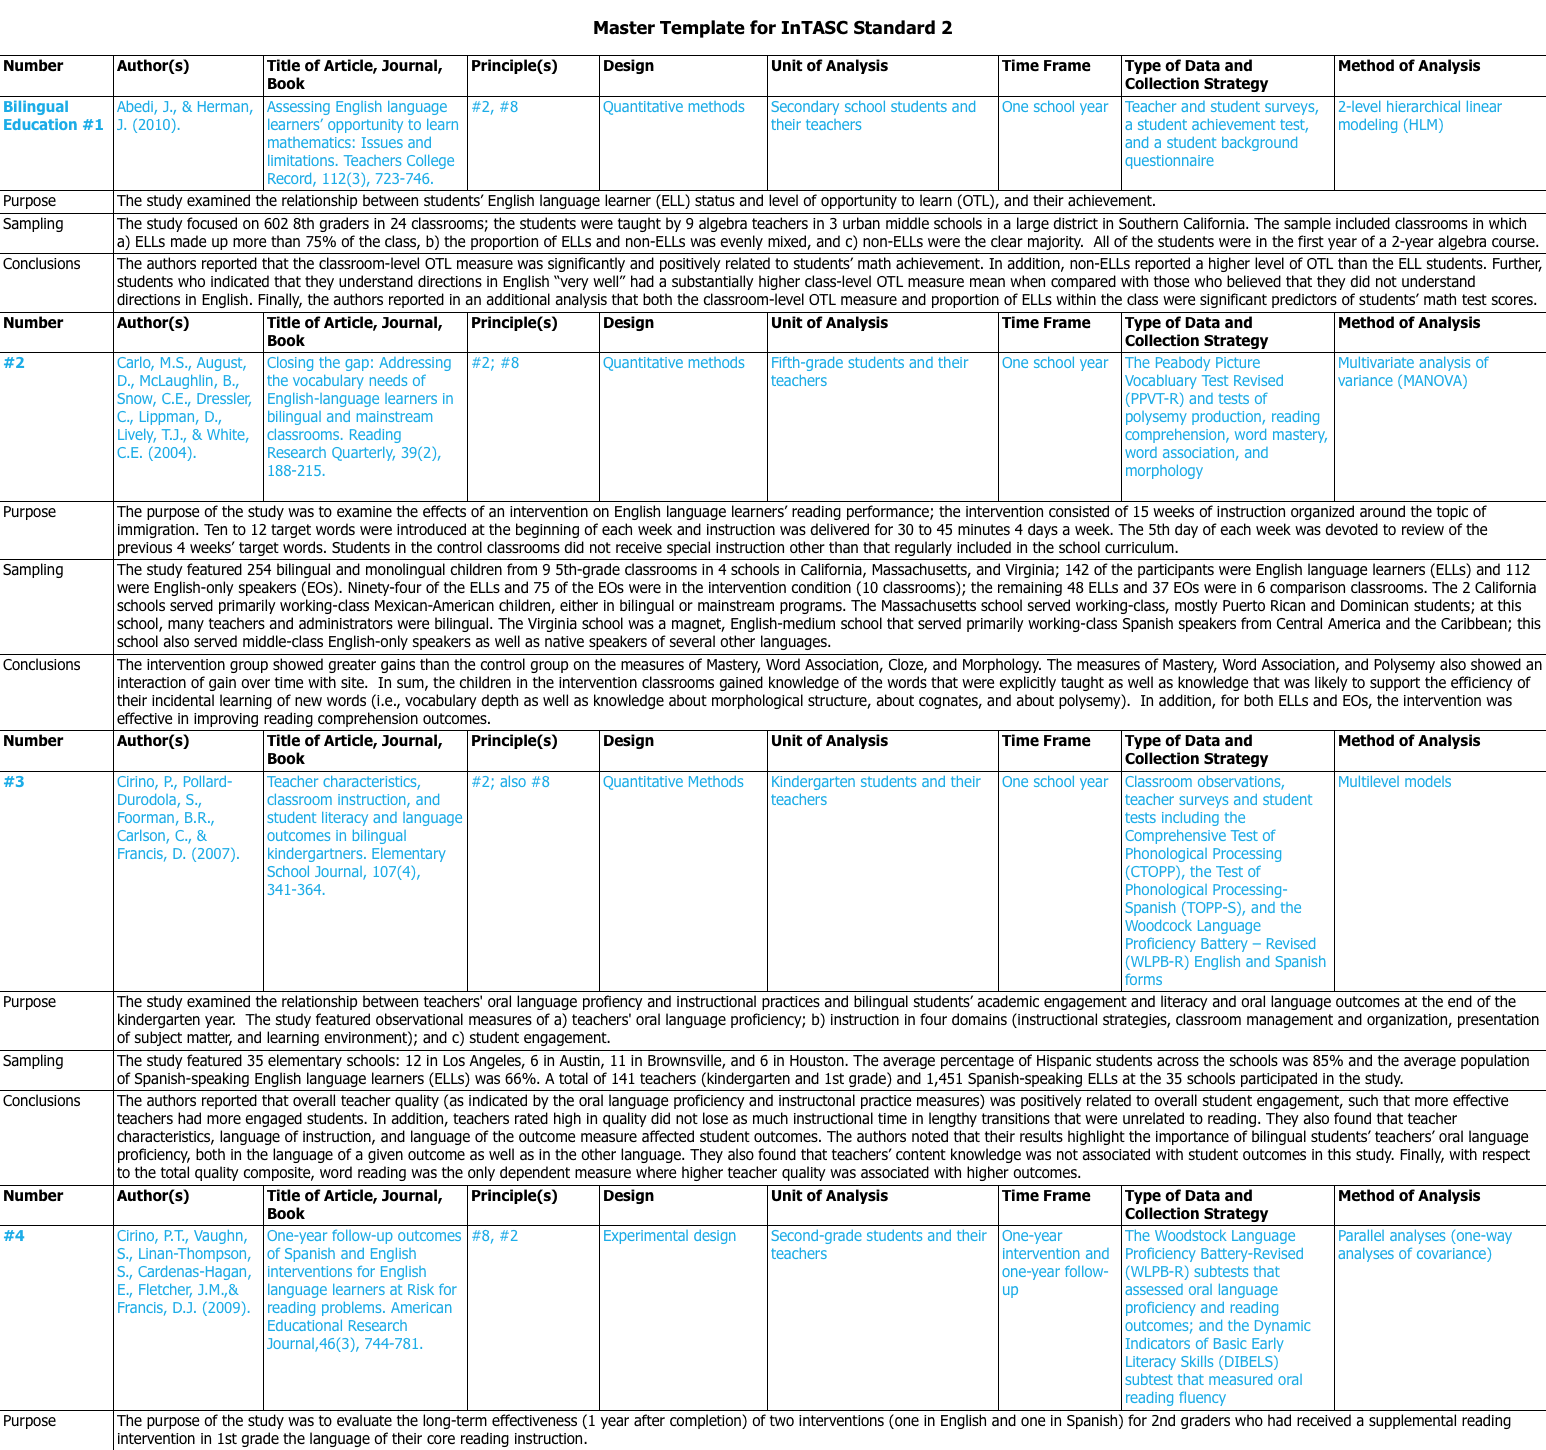 InTASC Research Studies Templates by Standard page 1